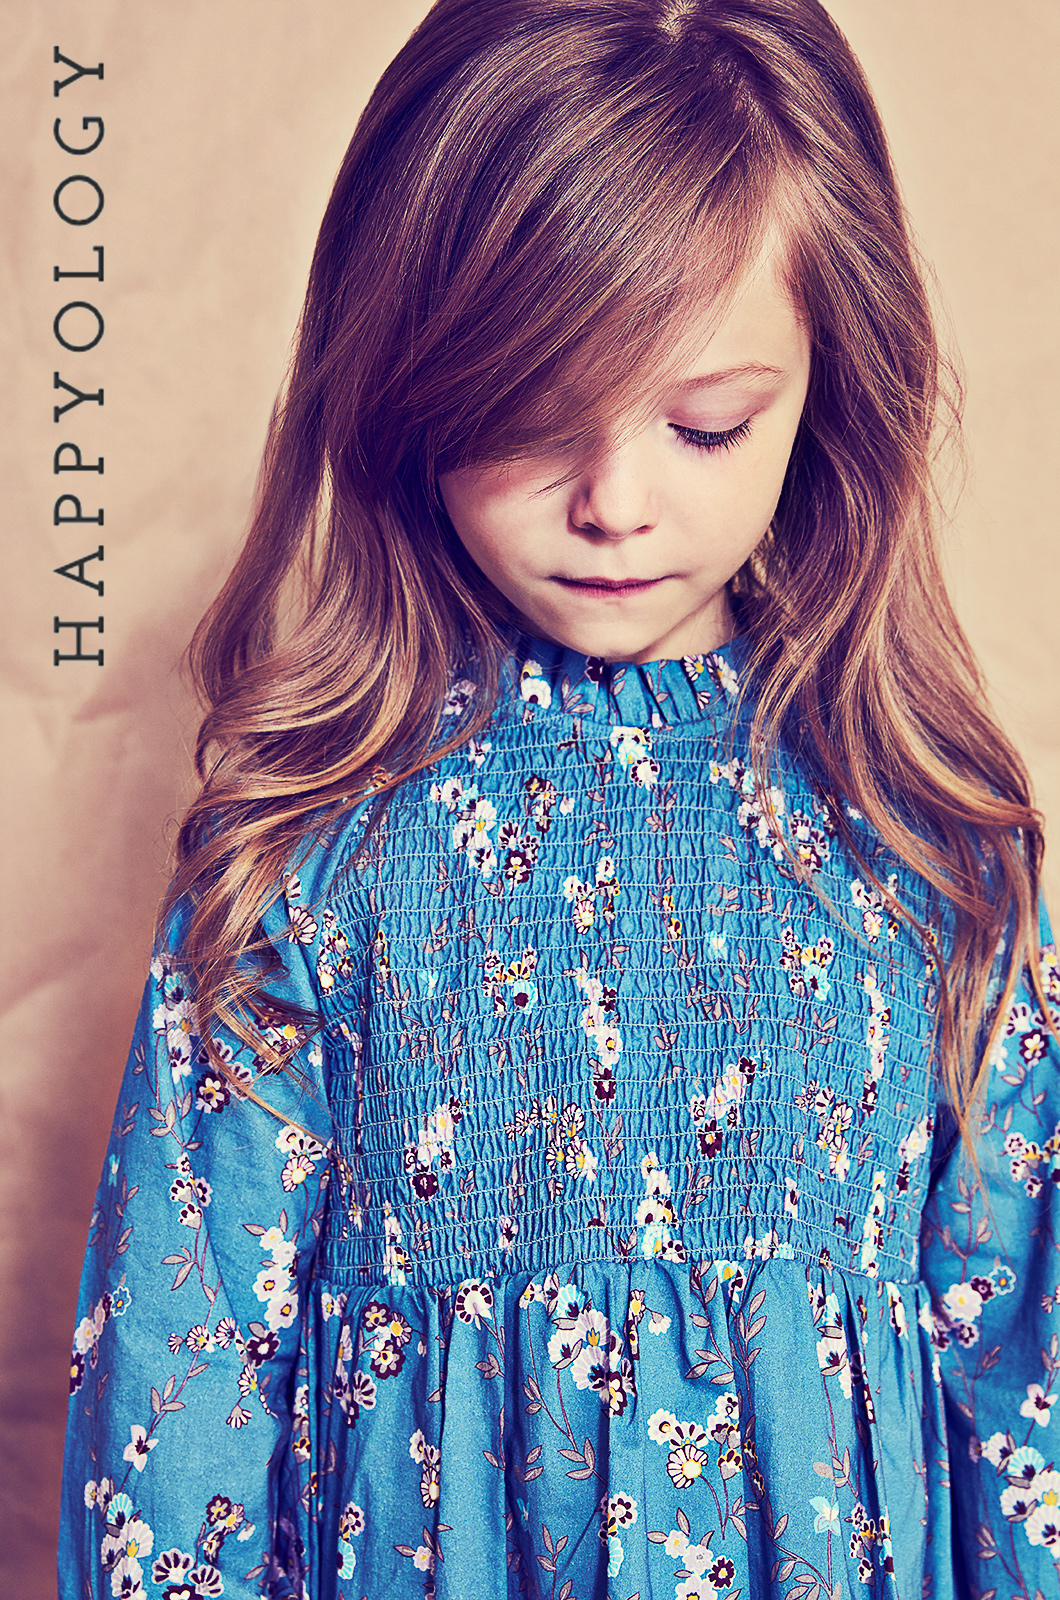 Happyology kids fashion campaign